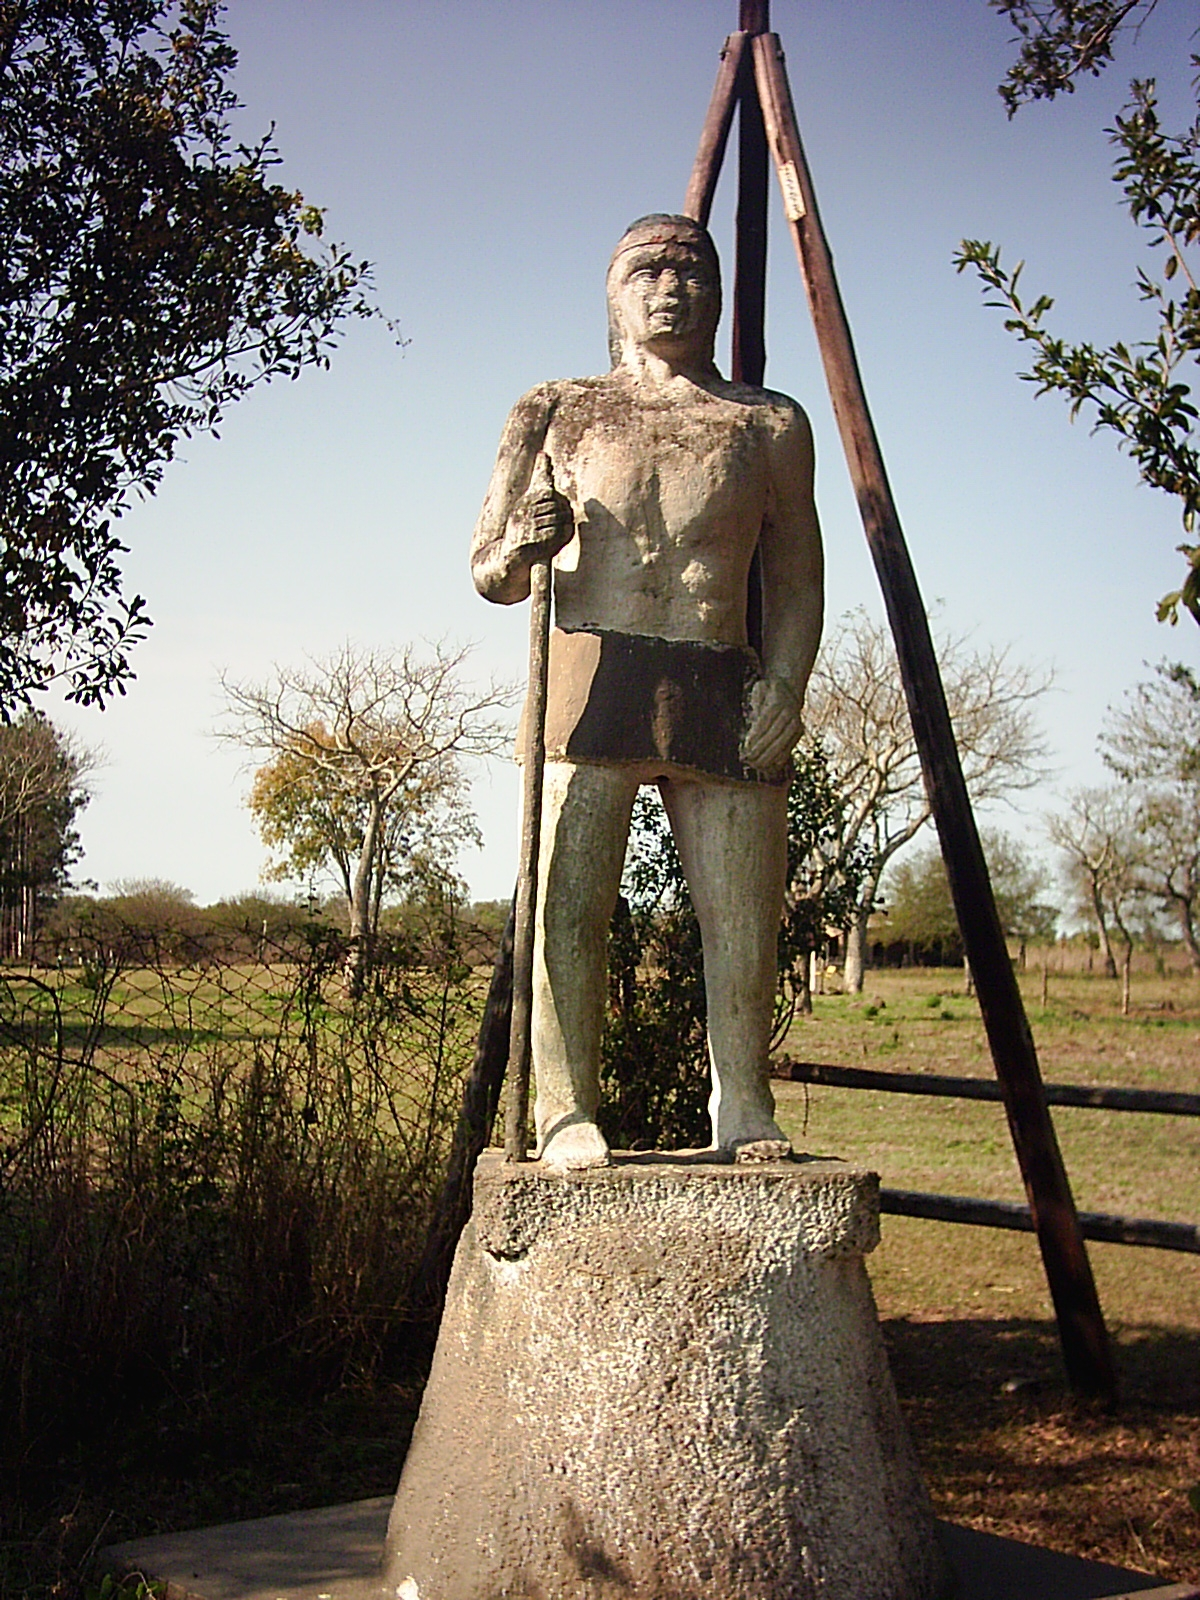 File:Estatua Cacique Leoncito.